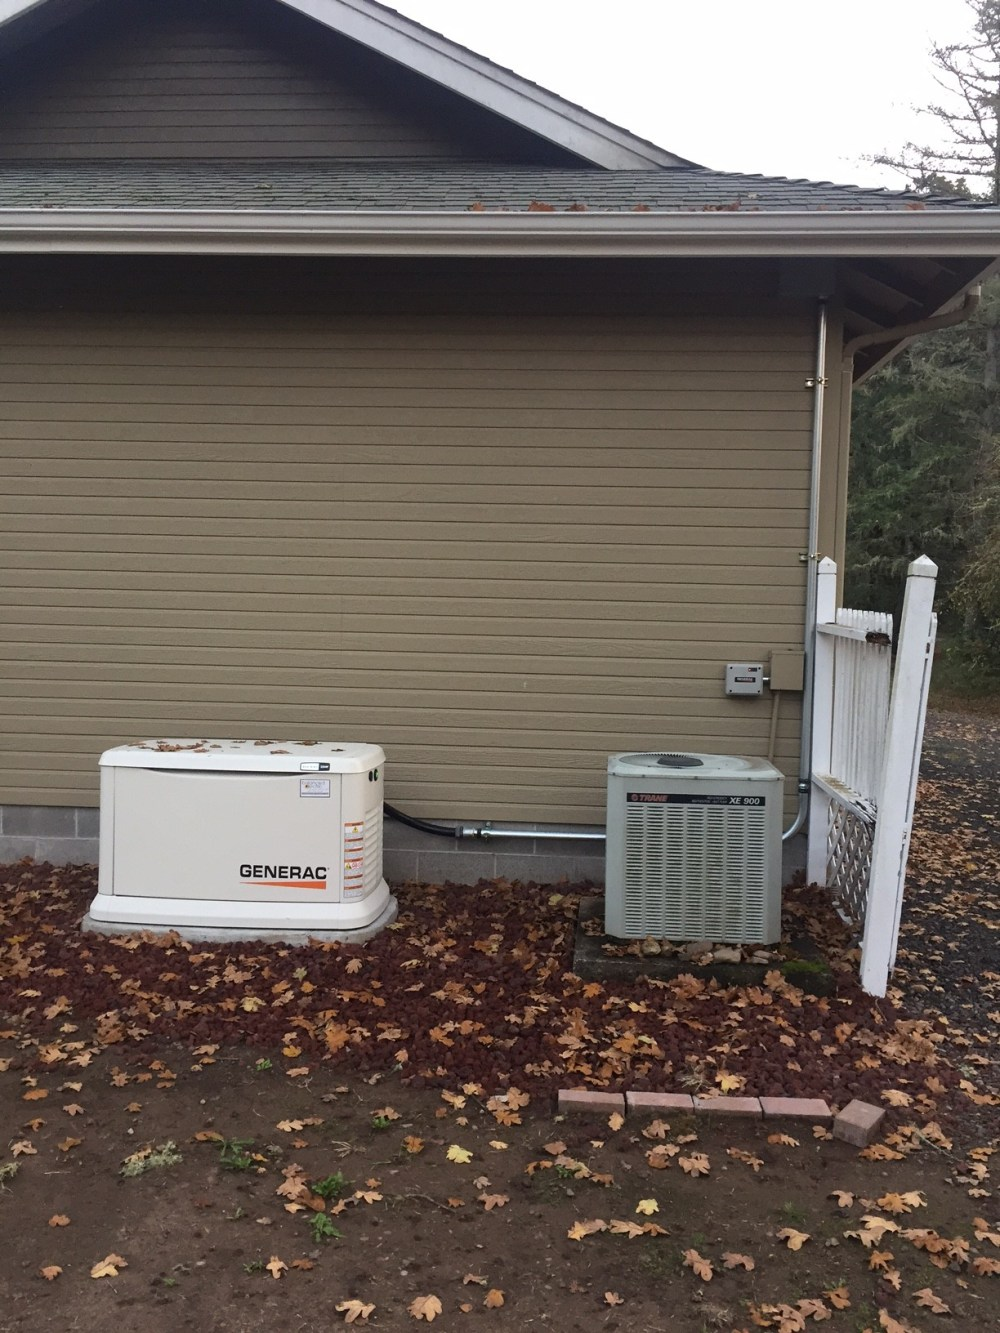 medium resolution of this generator was installed by the pump house and the service was upgraded from a zinsco meter main the house and the well are all on generator backup